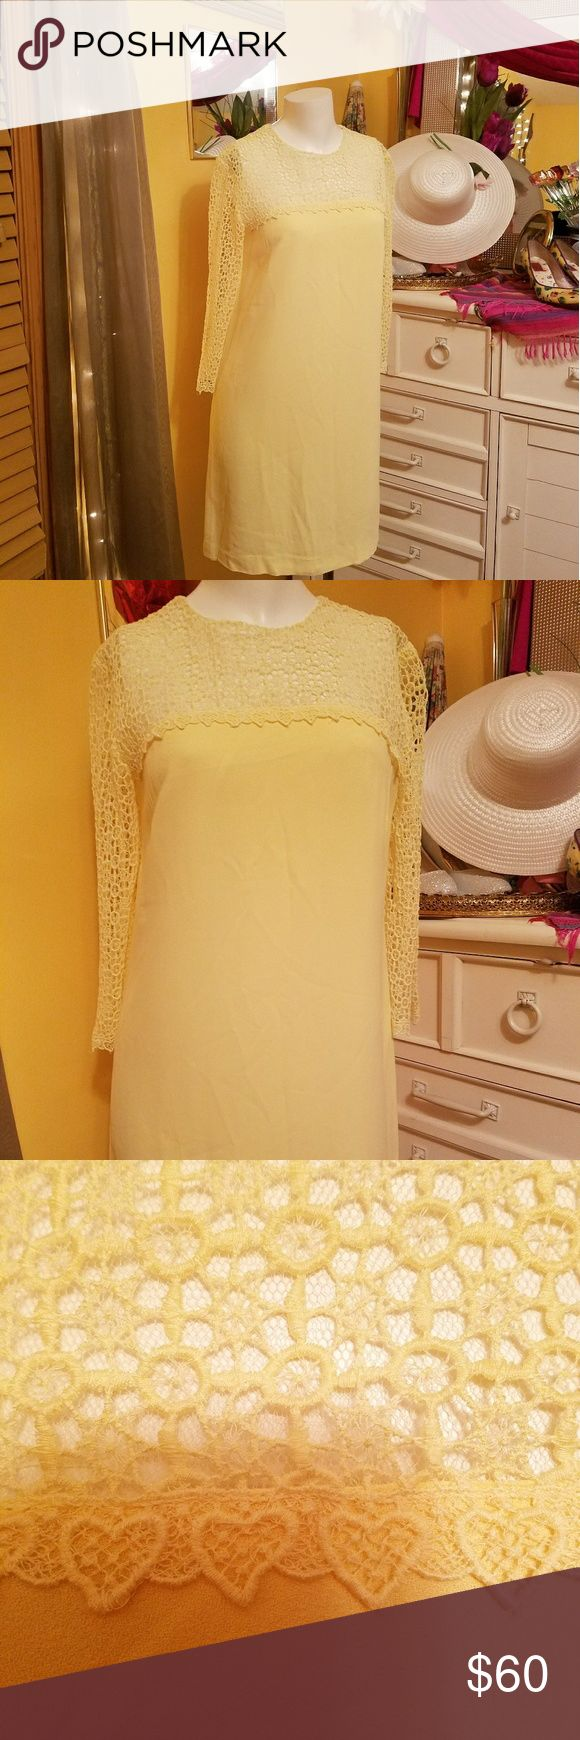 60's! Vintage Yellow Lace Dress As Vintage as you can get! In Great Vintage condition! Very delicate and feminine. Beautiful for the Summer or to go to a Wedding. I believe this is a 1960's Dress. I would have kept but does not fit me. I hope it goes to a good home. This is truly a rare gem in great vintage condition. I believe it fits a size 5/6 best. Sorry I know yellow background not good but I am limited on time. Have lots more to share! Check my closet. Price ranges vary. BUNDLE and…